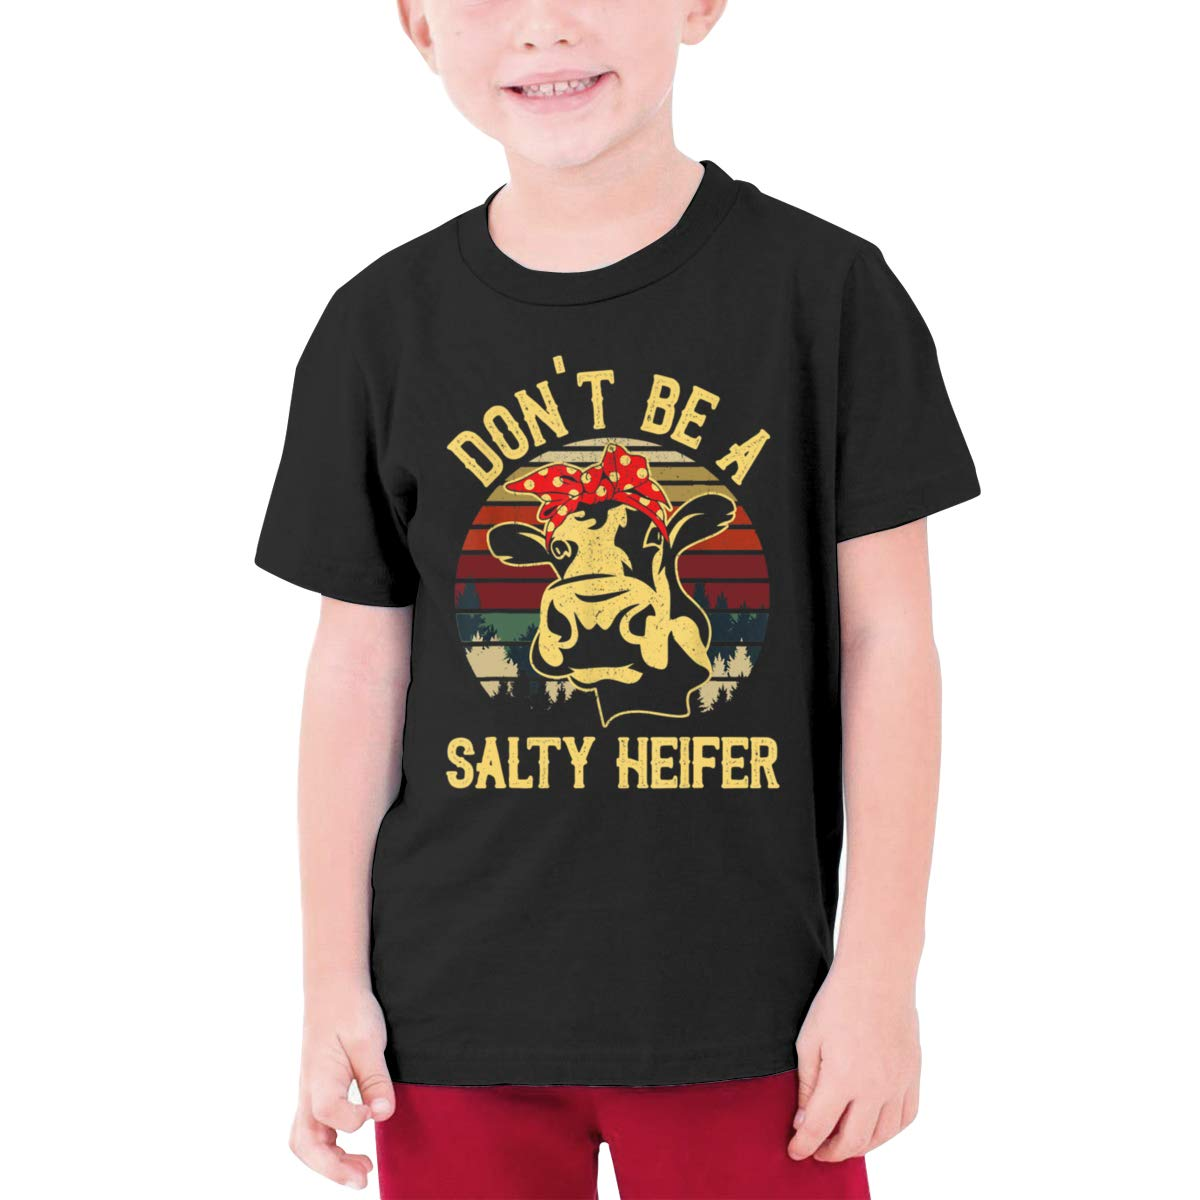 Fzjy Wnx Dont Be A Salty Heifer Boys Short Sleeve Shirts